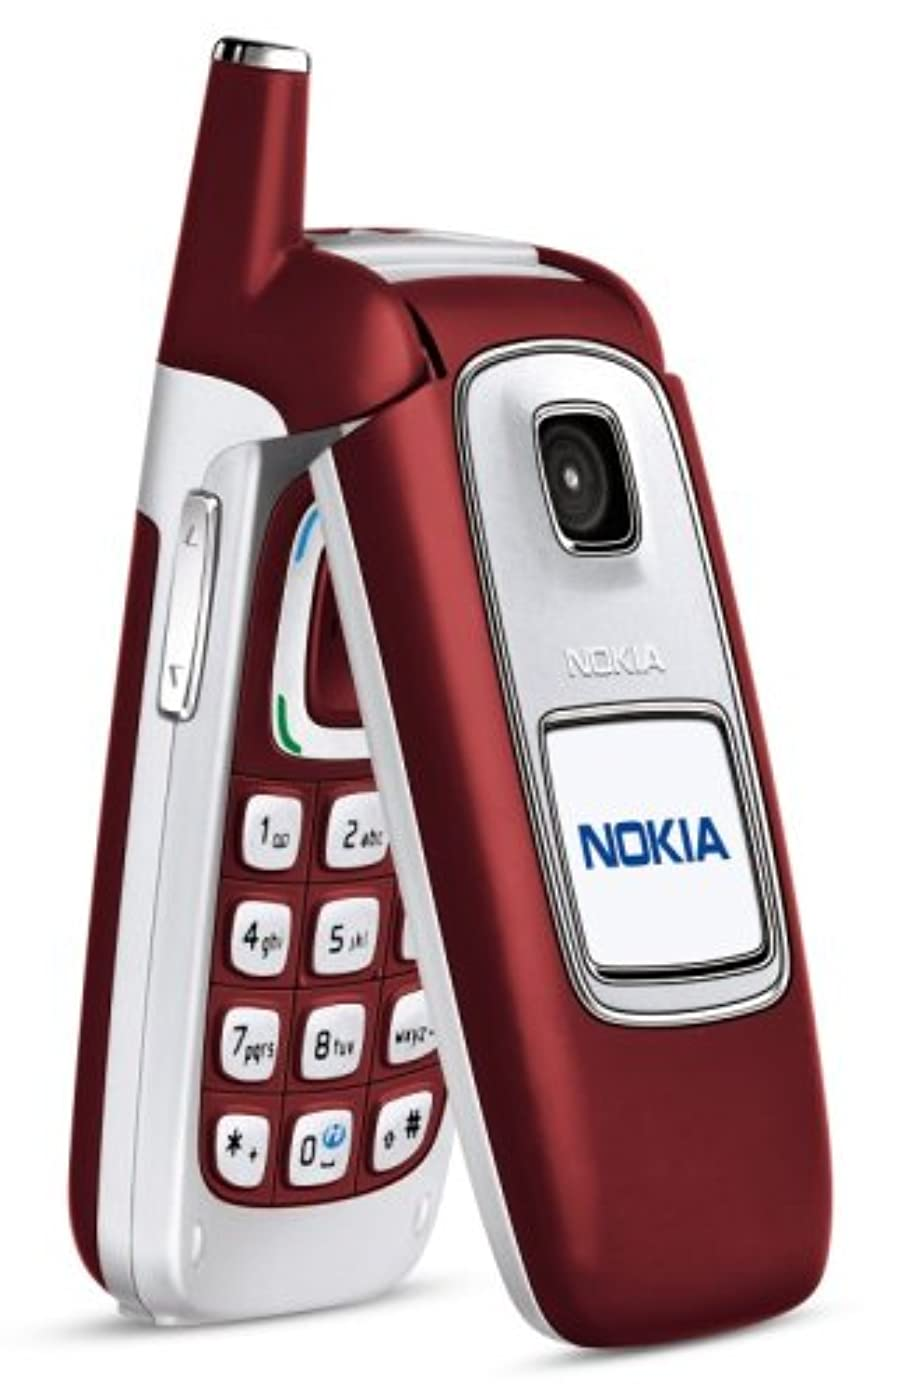 Nokia 6103 Unlocked Cell Phone with Camera--U.S. Version with Warranty (red)